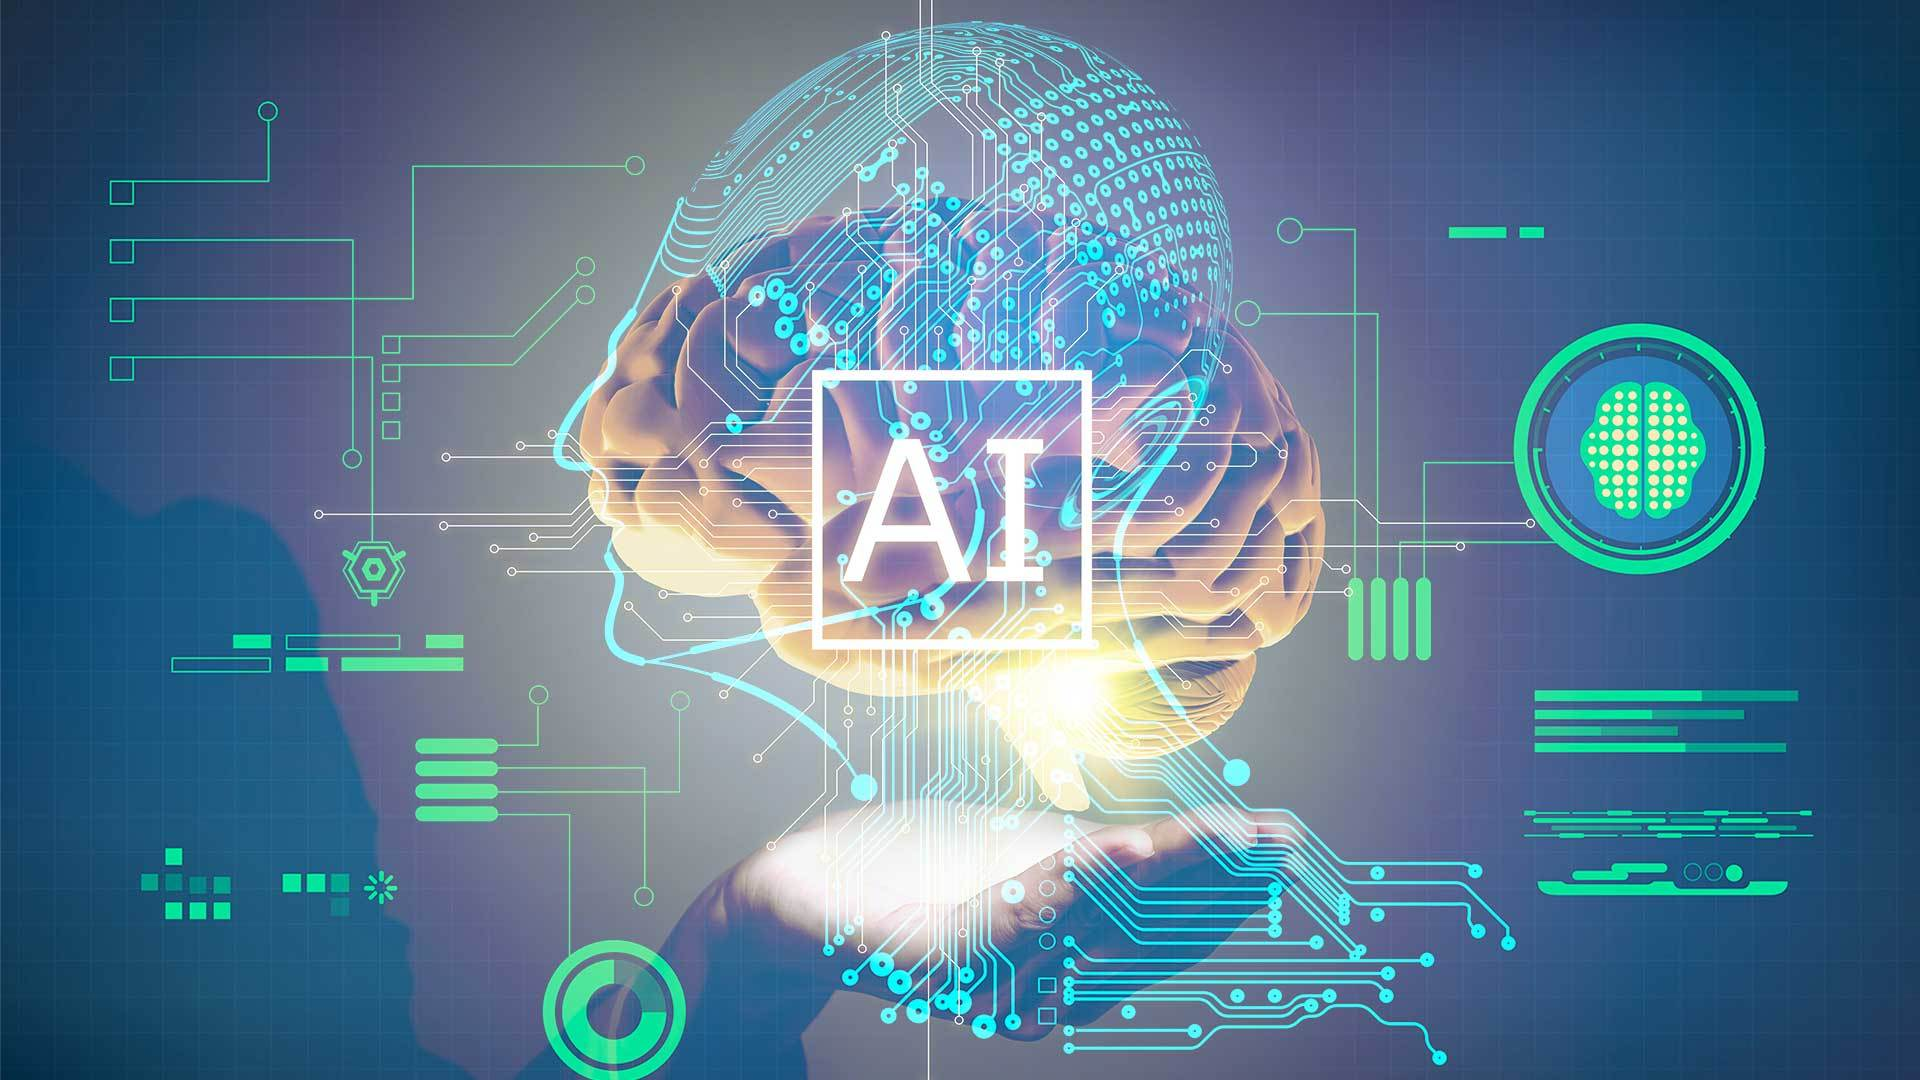 Savvycom-Is modern AI intelligent enough?